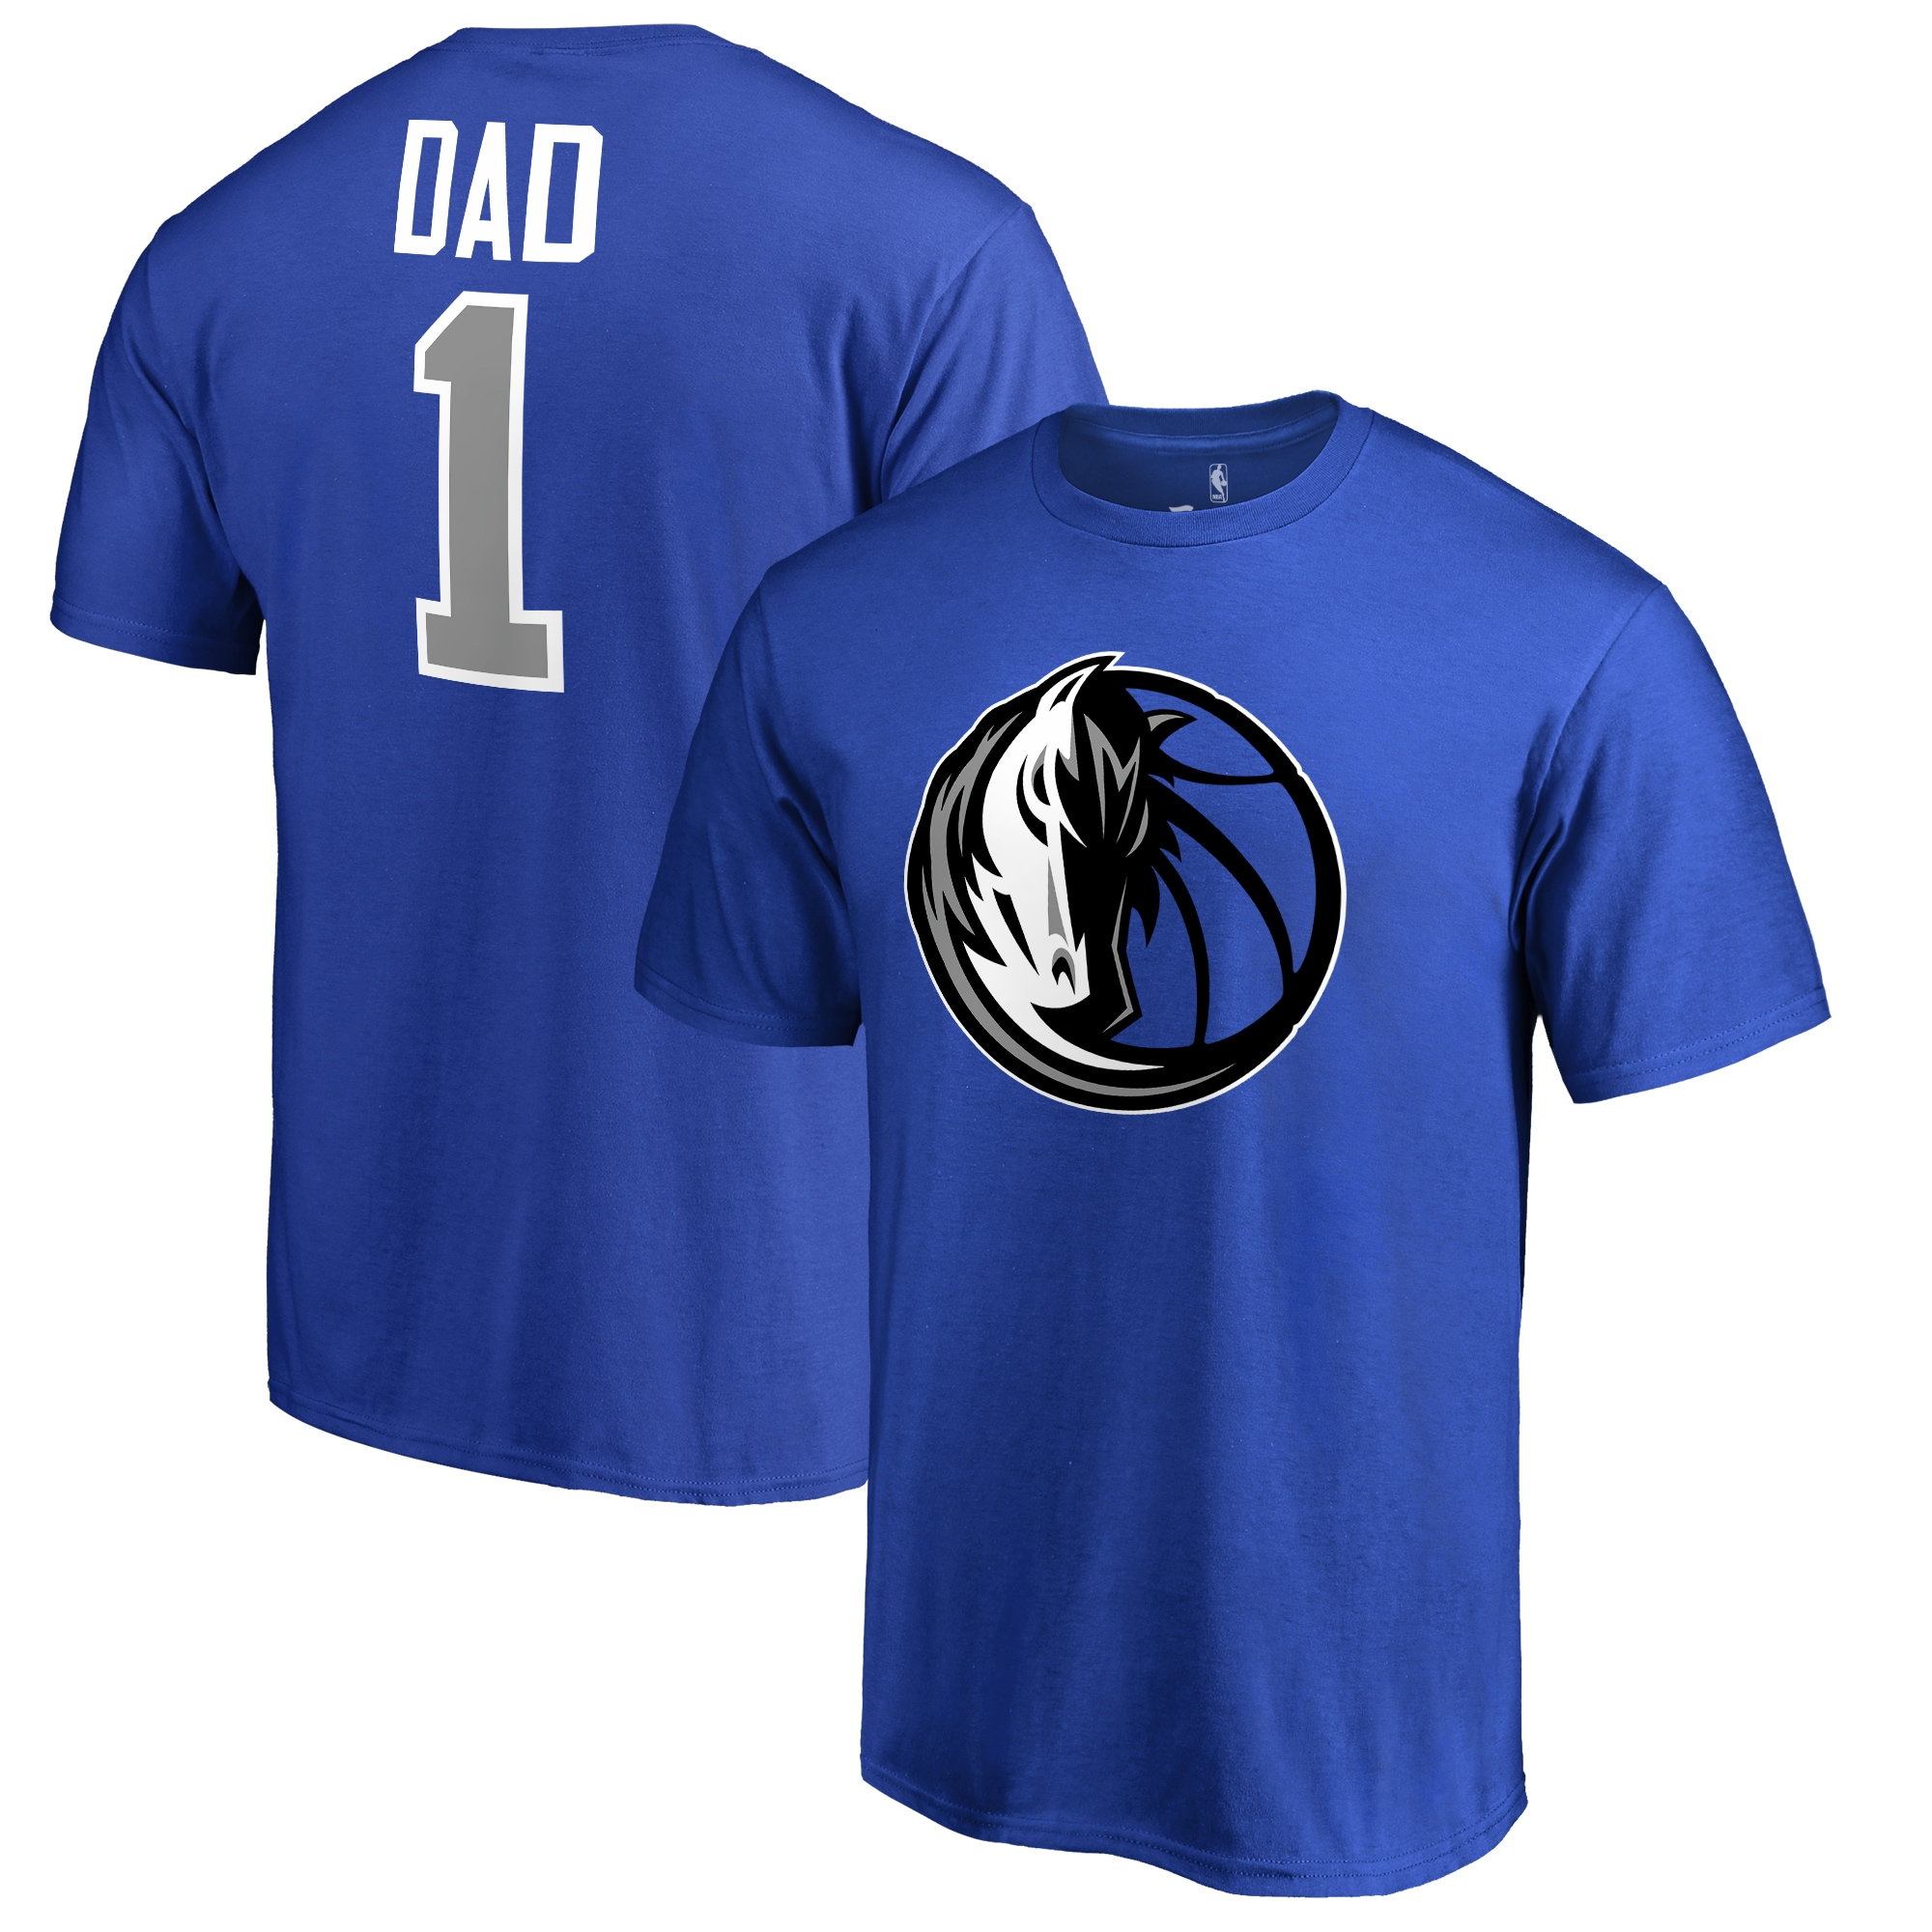 Dallas Mavericks #1 Dad T-Shirt - Royal